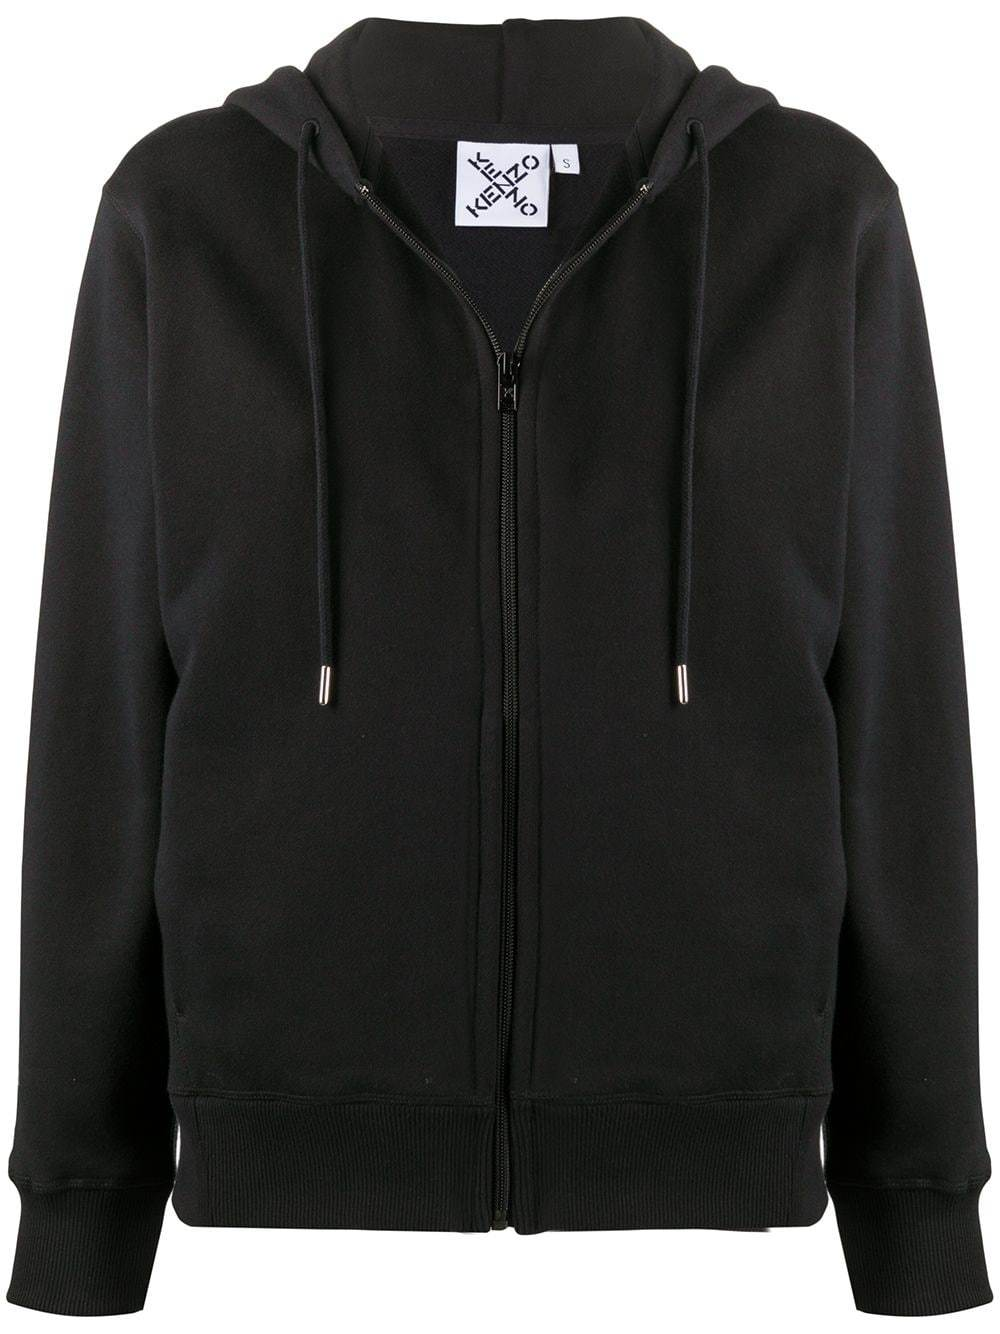 KENZO WOMEN Cross Logo Zip-up Jacket Black